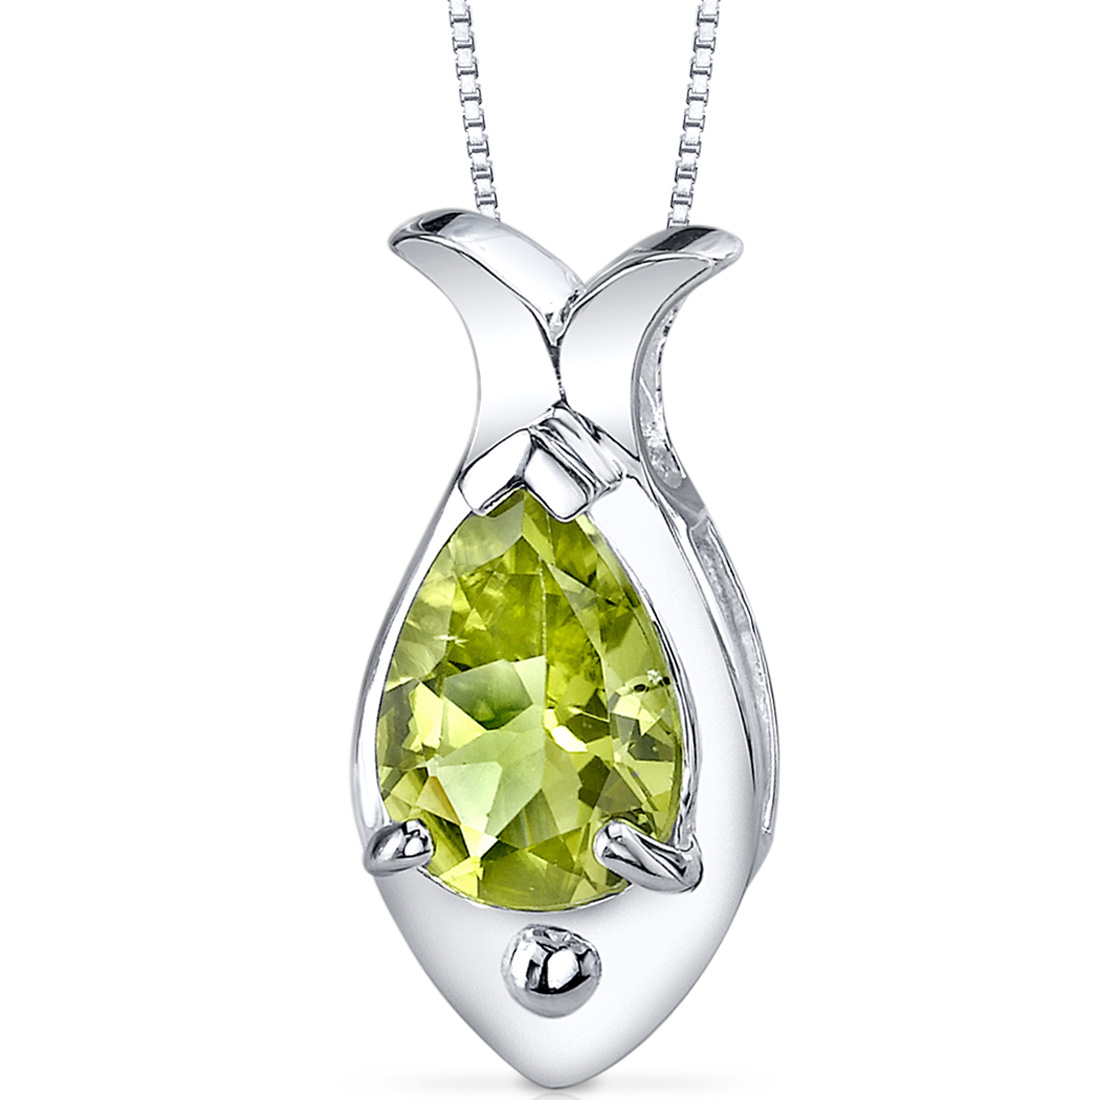 peora Fish Design 1.75 carats Pear Shape Sterling Silver Peridot Pendant at Sears.com